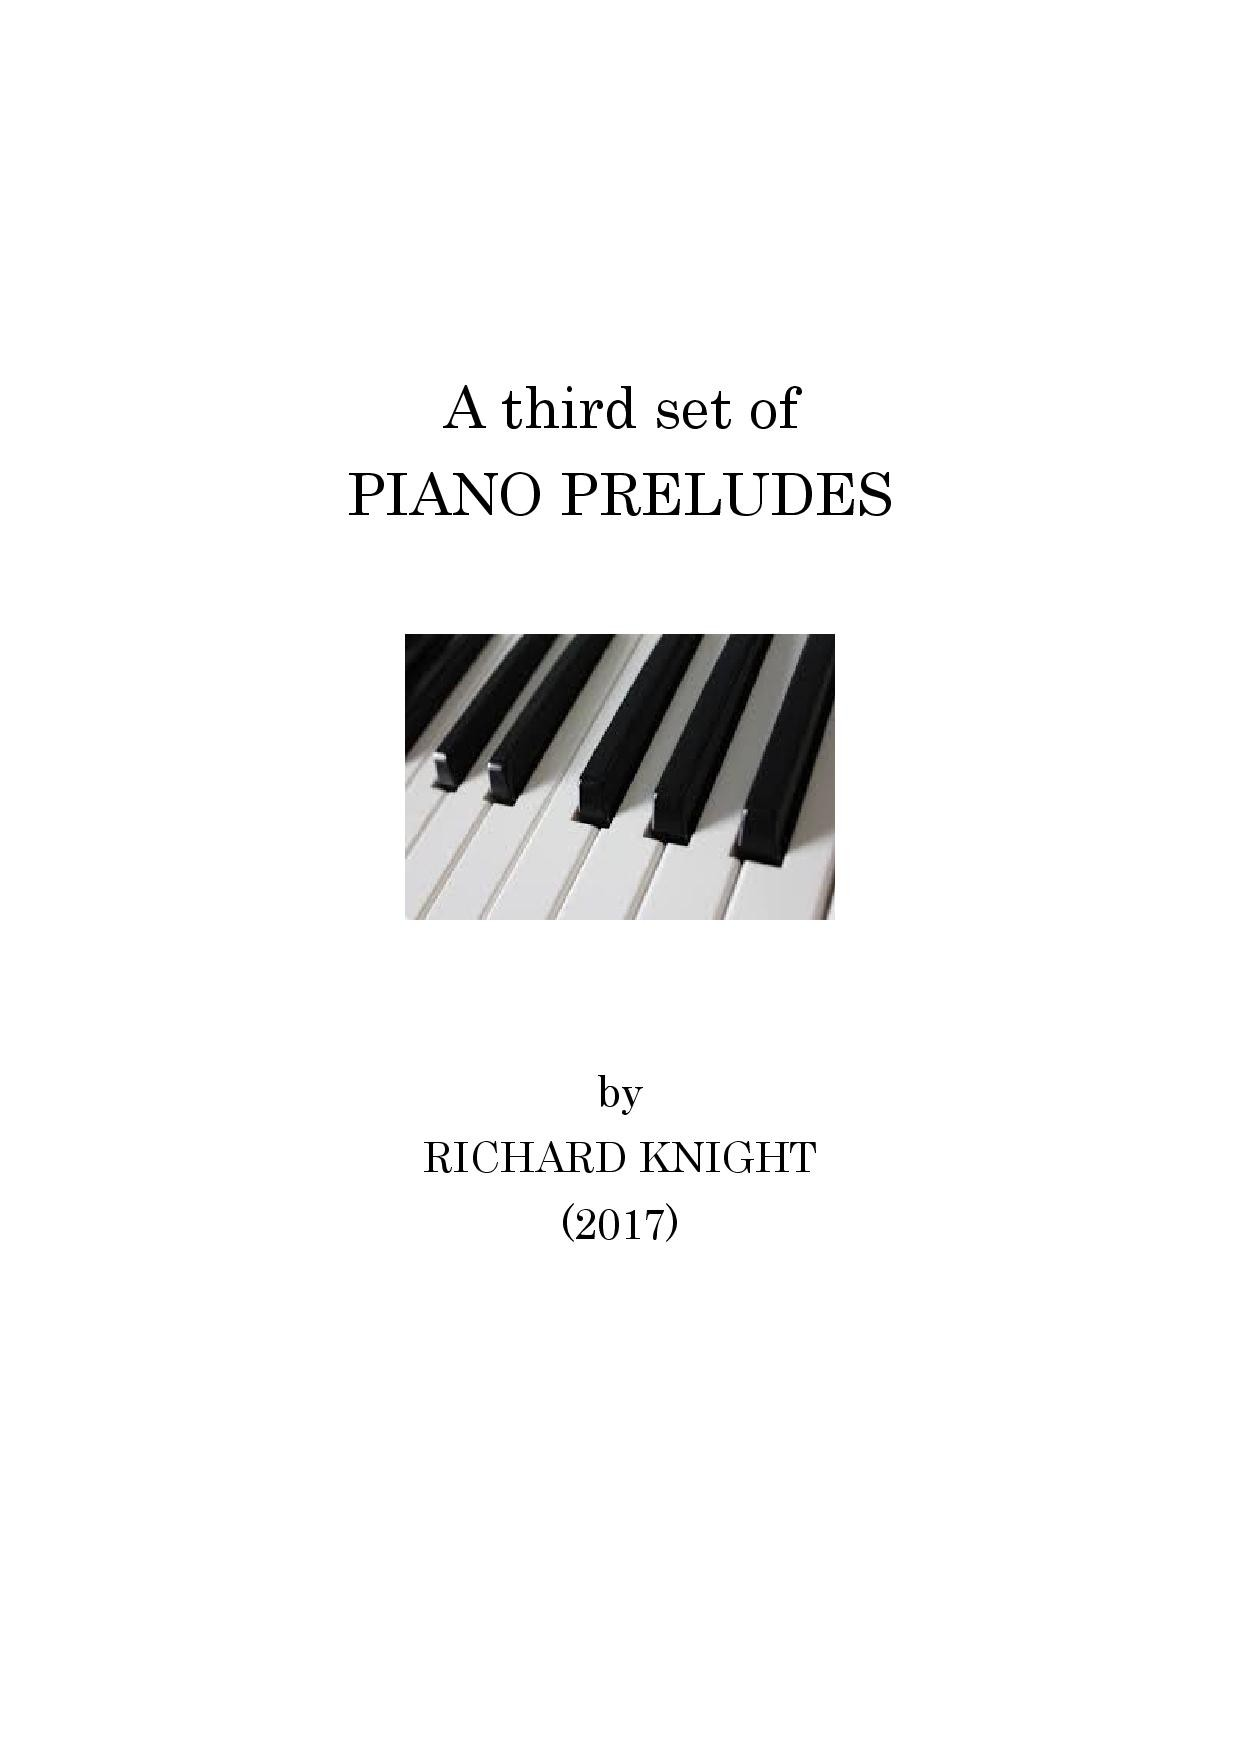 Third set of Piano Preludes